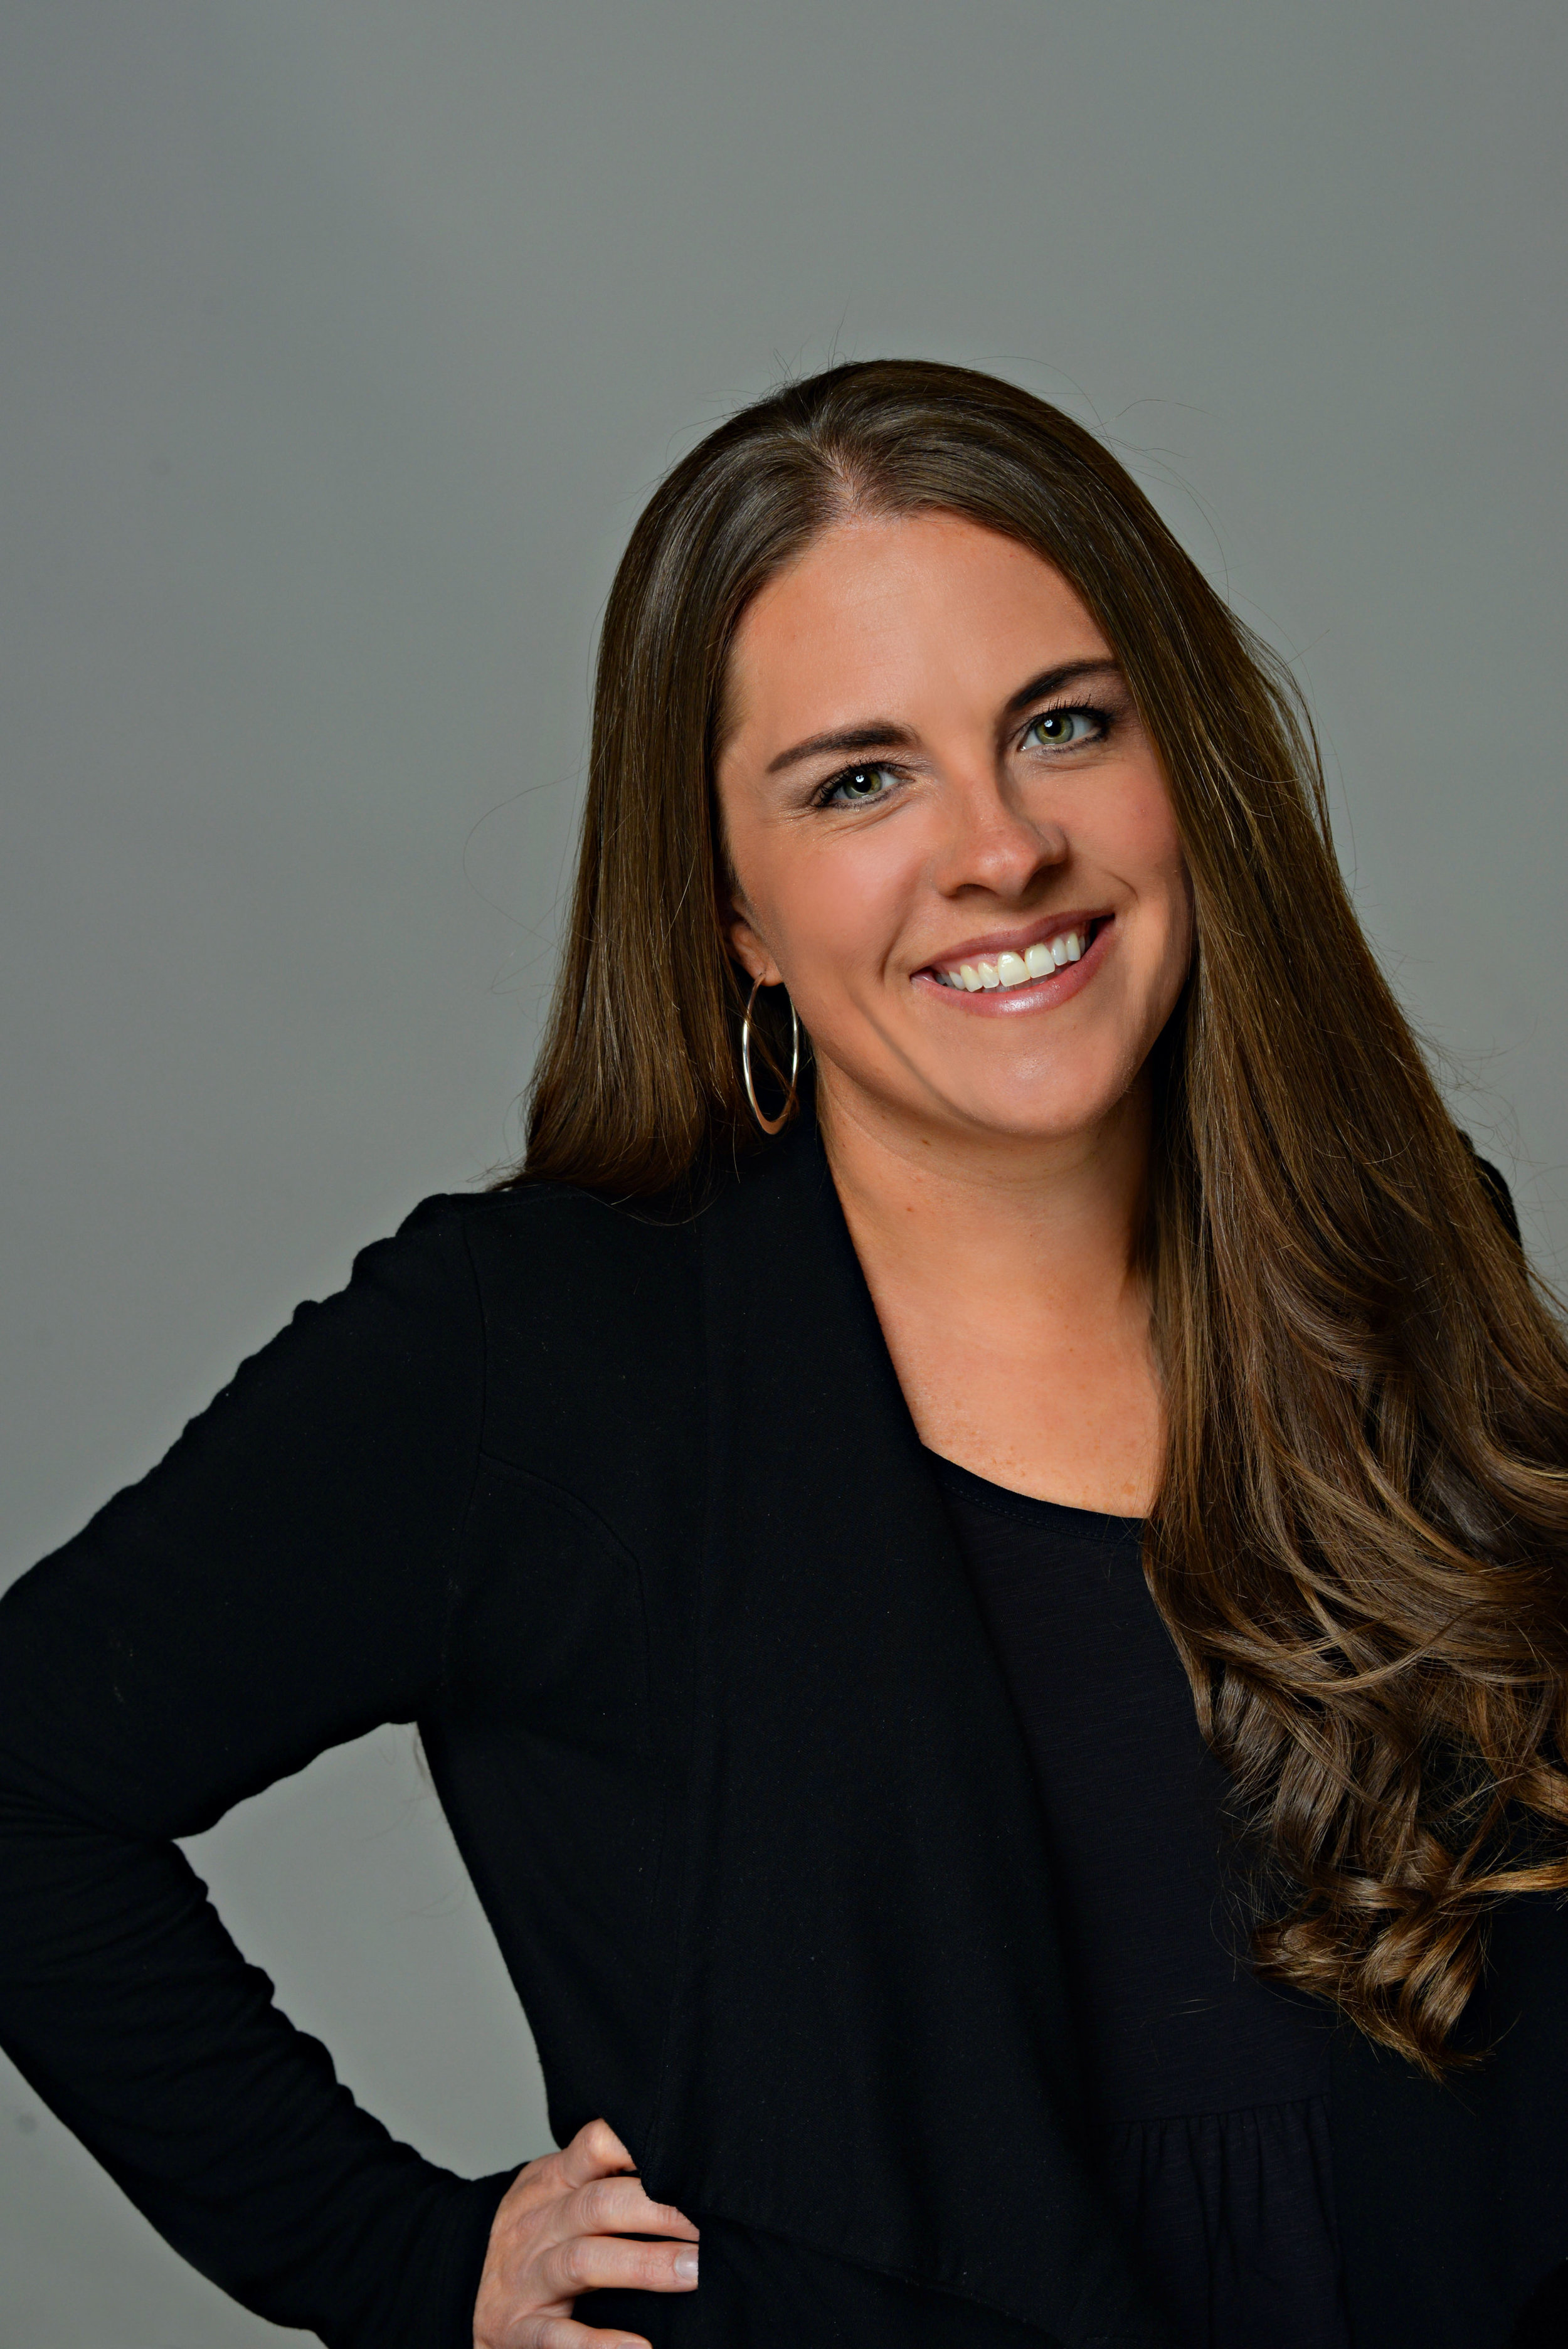 BRITTANY NORDHOFF - She has over 25 years of experience in dance and drill. She coached the Grand National Champion Brighton Drill team for 5 years. She has been judging for the past 15 years for many dance competitions. She teaches our team rehearsals, jazz technique, and is our Solo Director. She is a huge Disney fan and loves golfing and going on vacation with her husband!